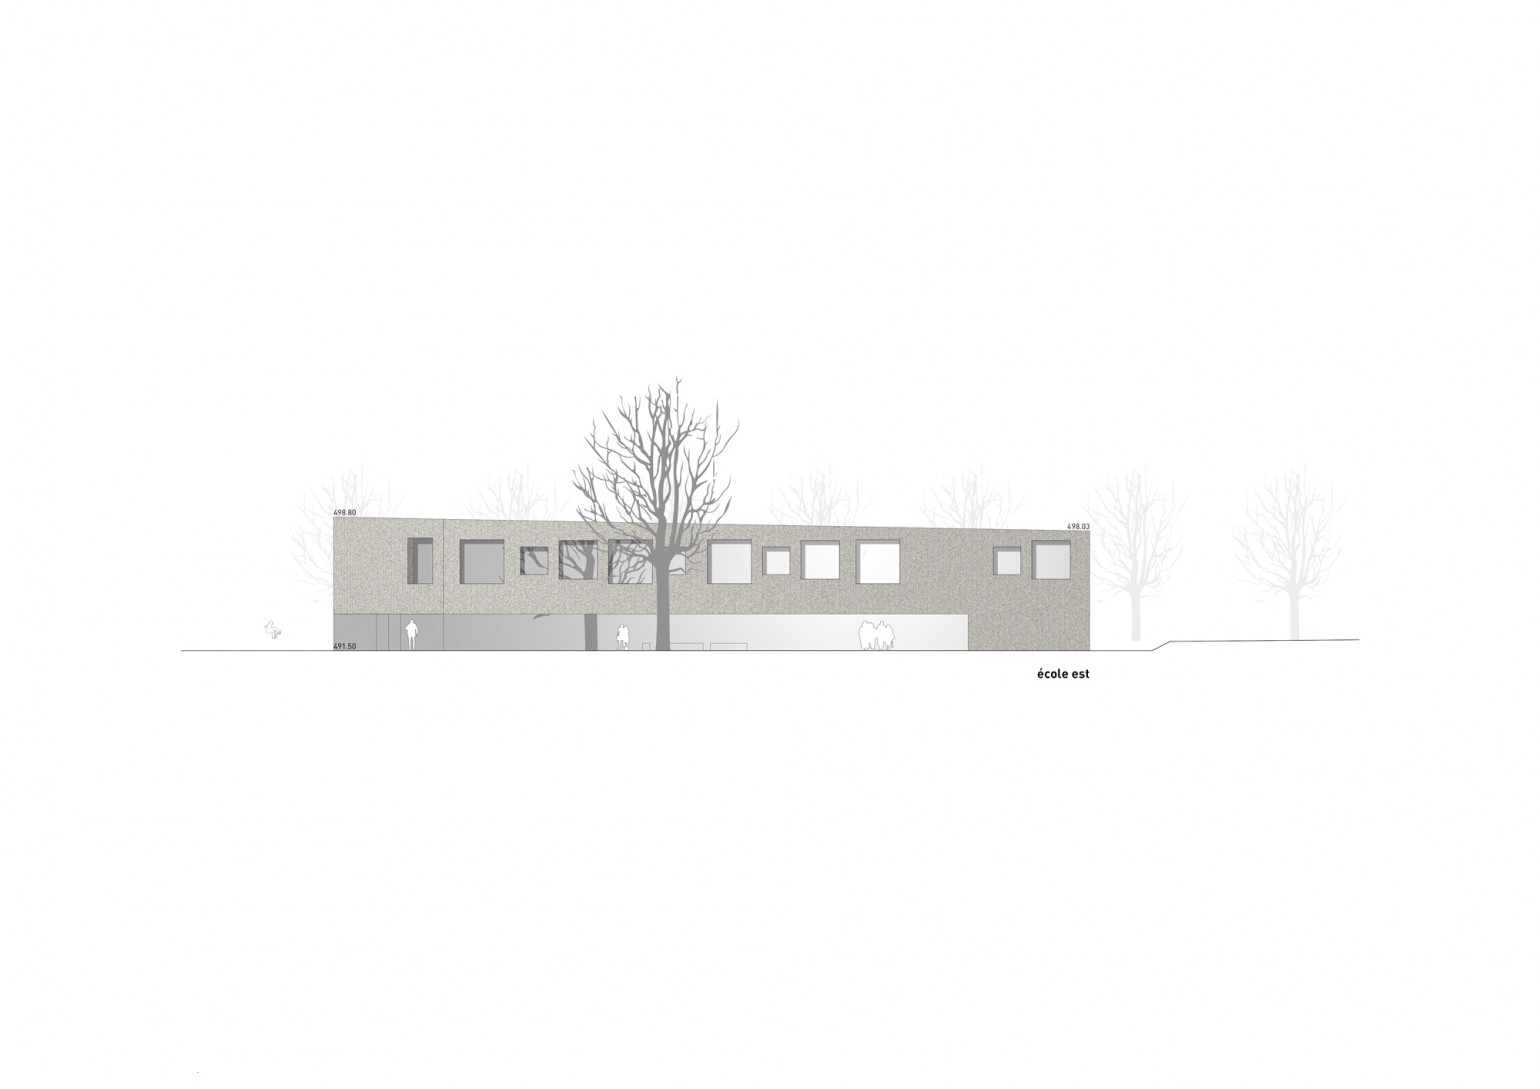 ecole_conthey_meyer_architecture_sion_02